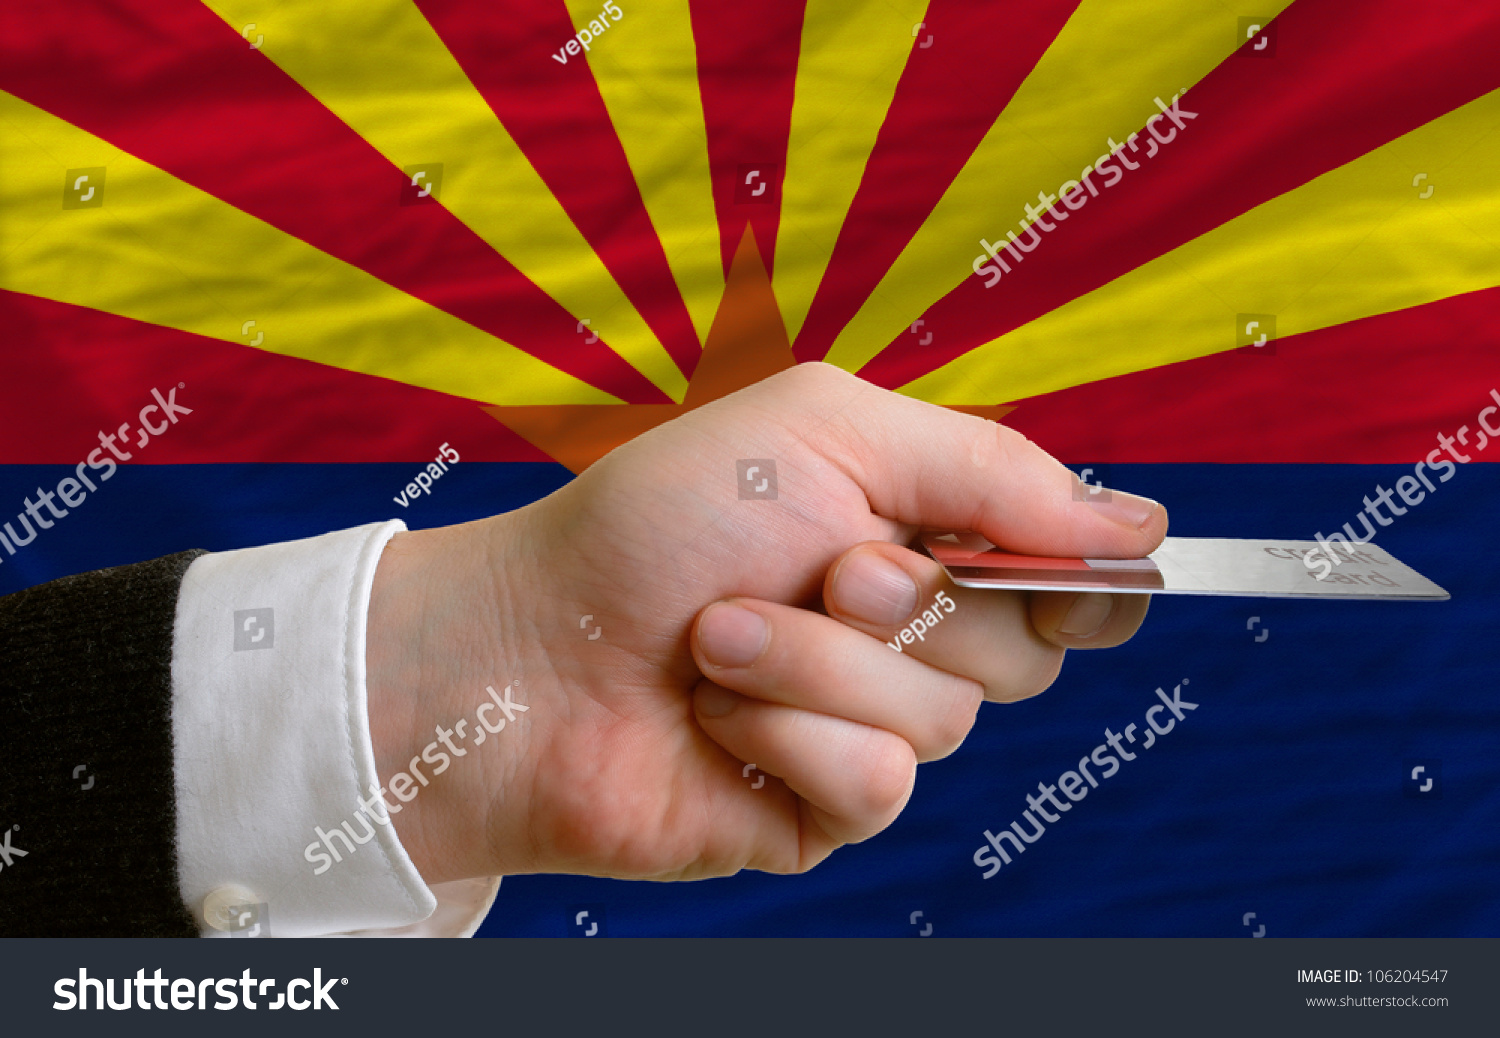 Man Stretching Out Credit Card To Buy Goods In Front Ofplete Wavy National  Flag Of